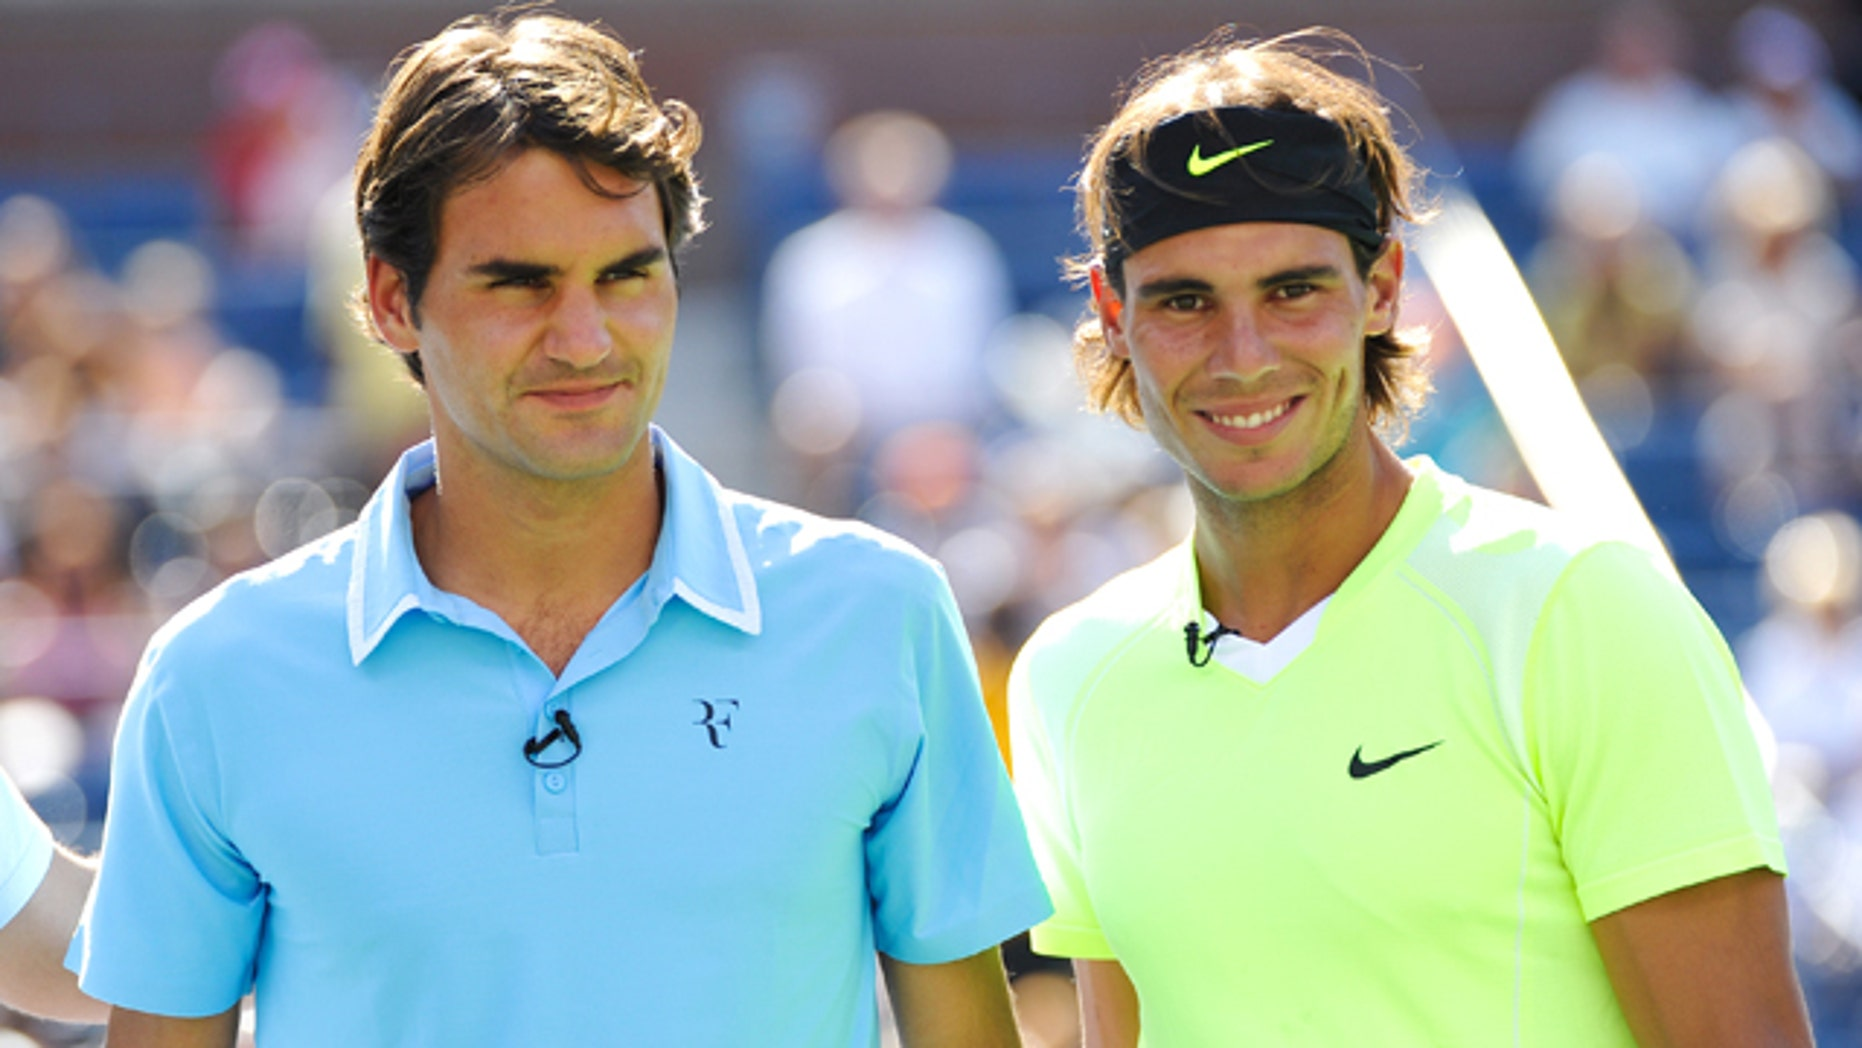 Tennis players Roger Federer, left, and Rafael Nadal look on during Arthur Ashe Kids Day at the USTA Billie Jean King National Tennis Center on Saturday, Aug. 28, 2010 in New York. (AP Photo/Evan Agostini)